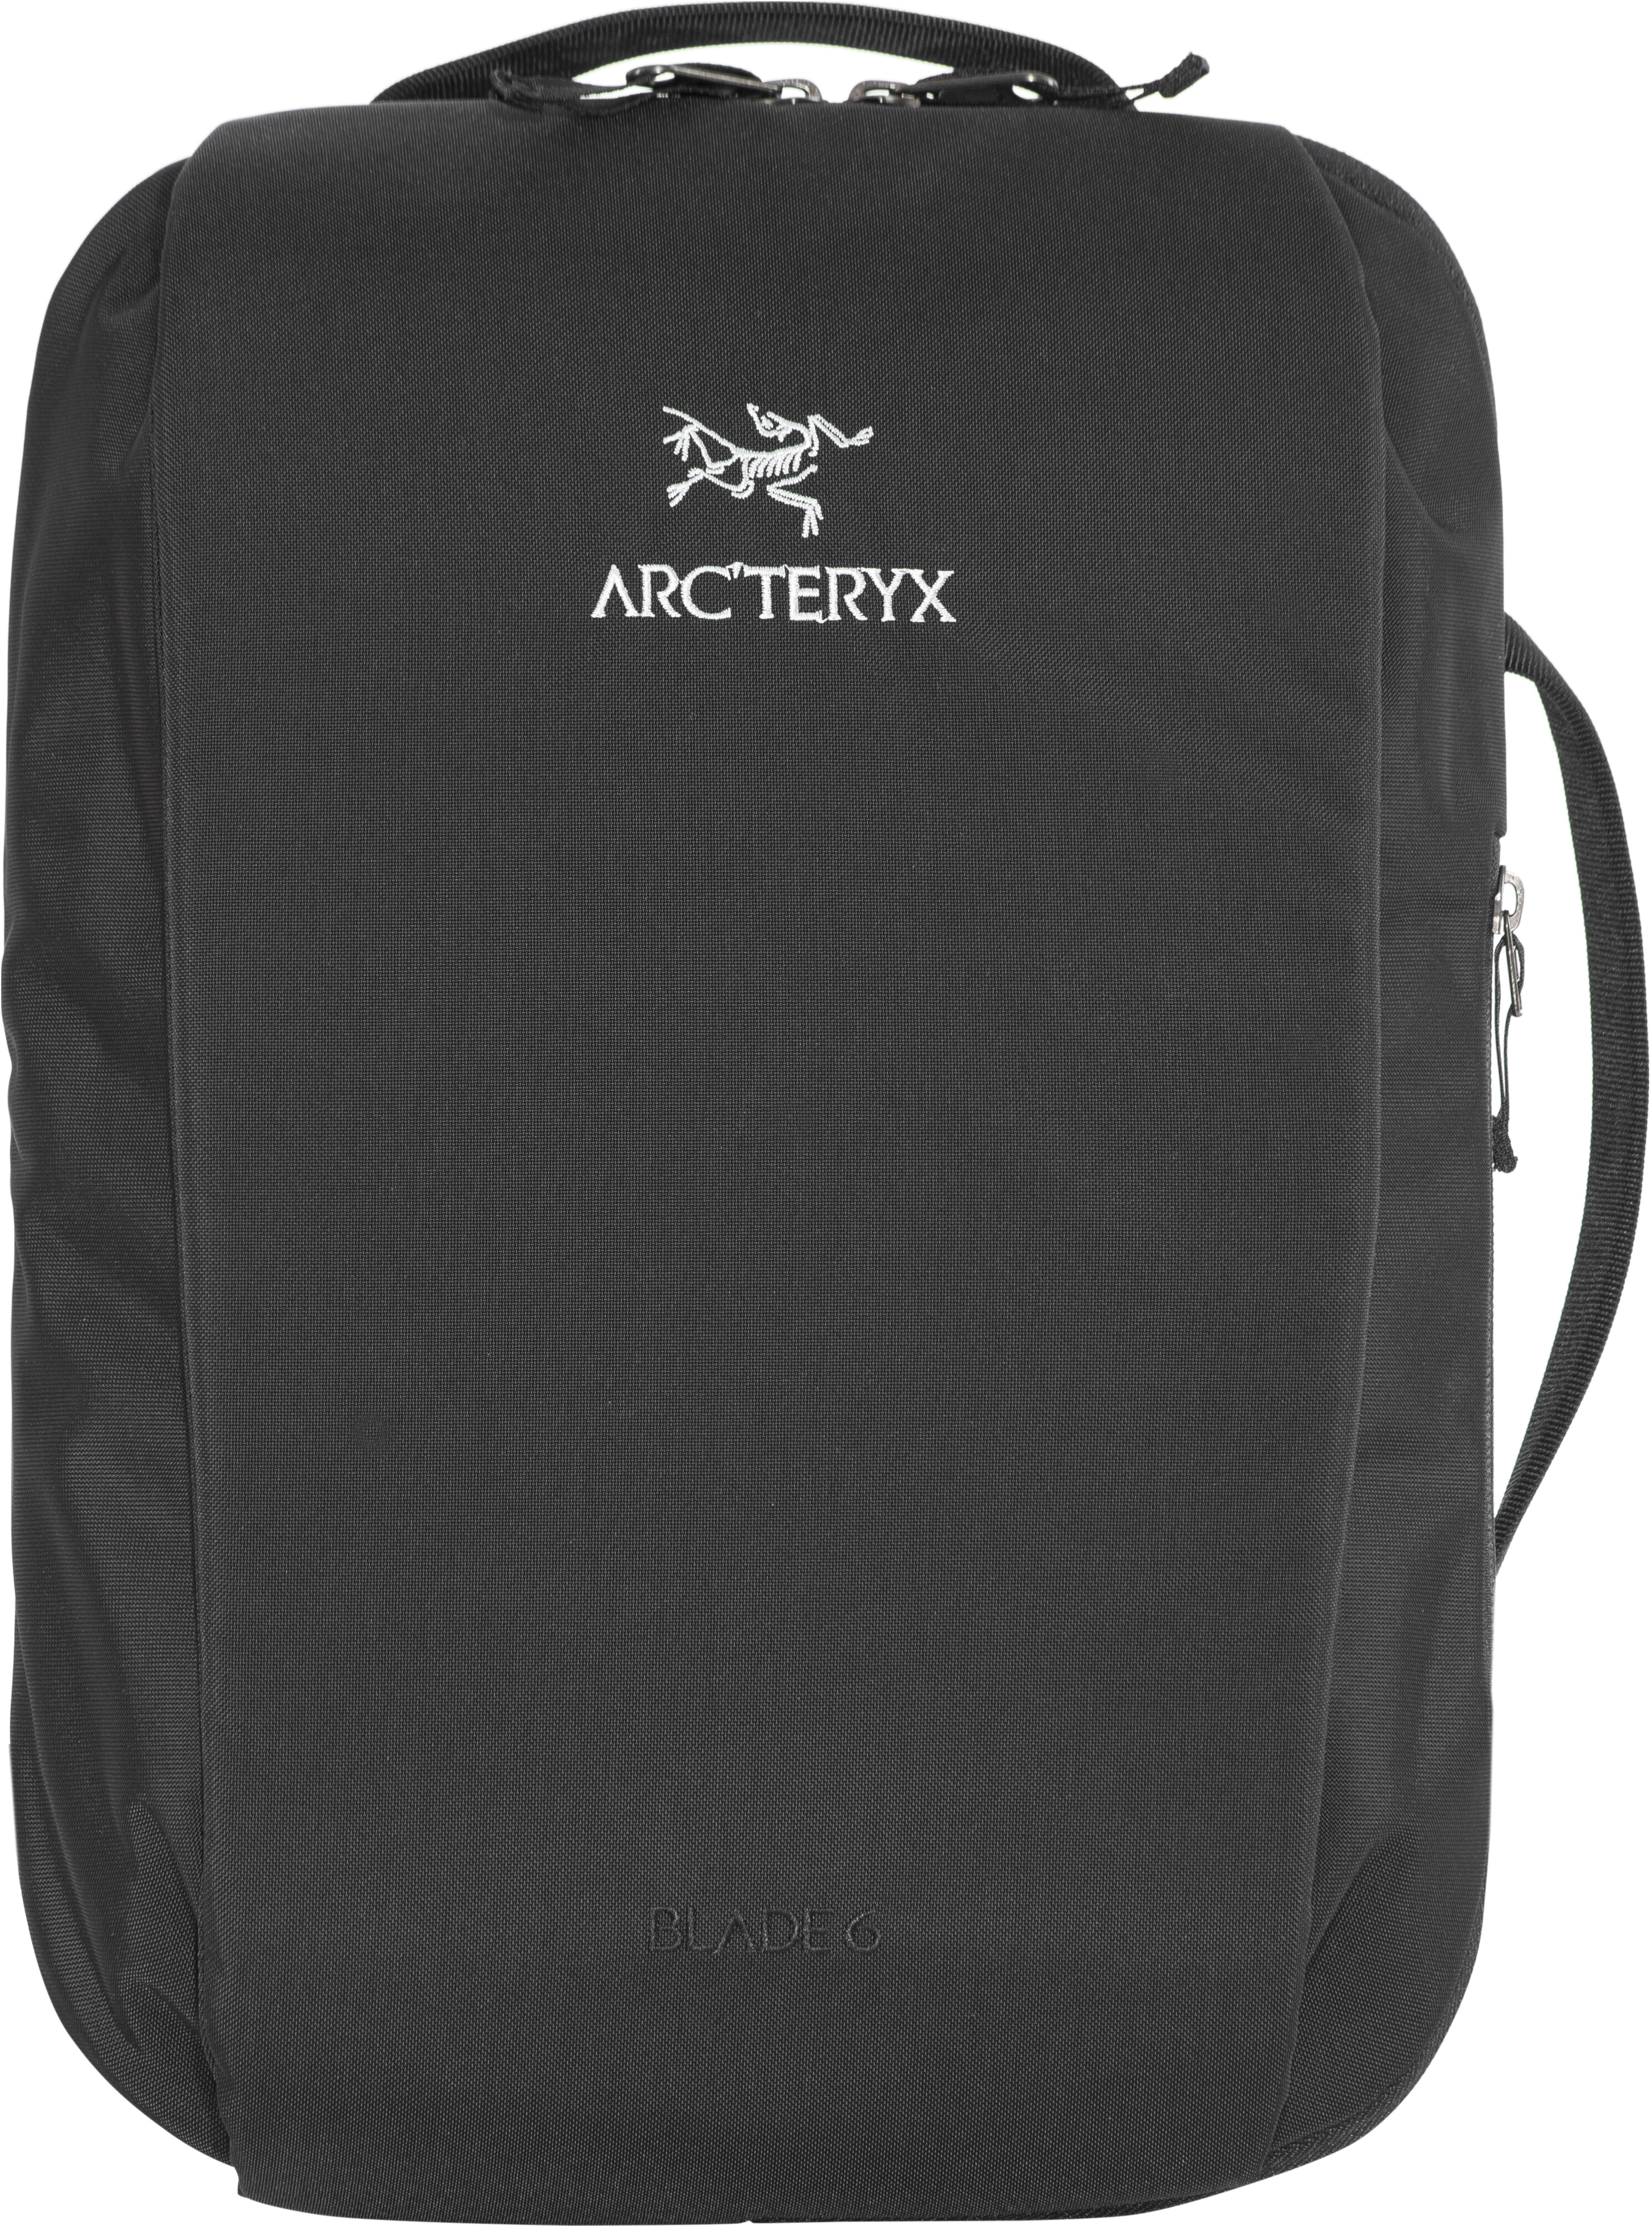 148aae3ff98 Arc'teryx Blade 6 Backpack black at Bikester.co.uk